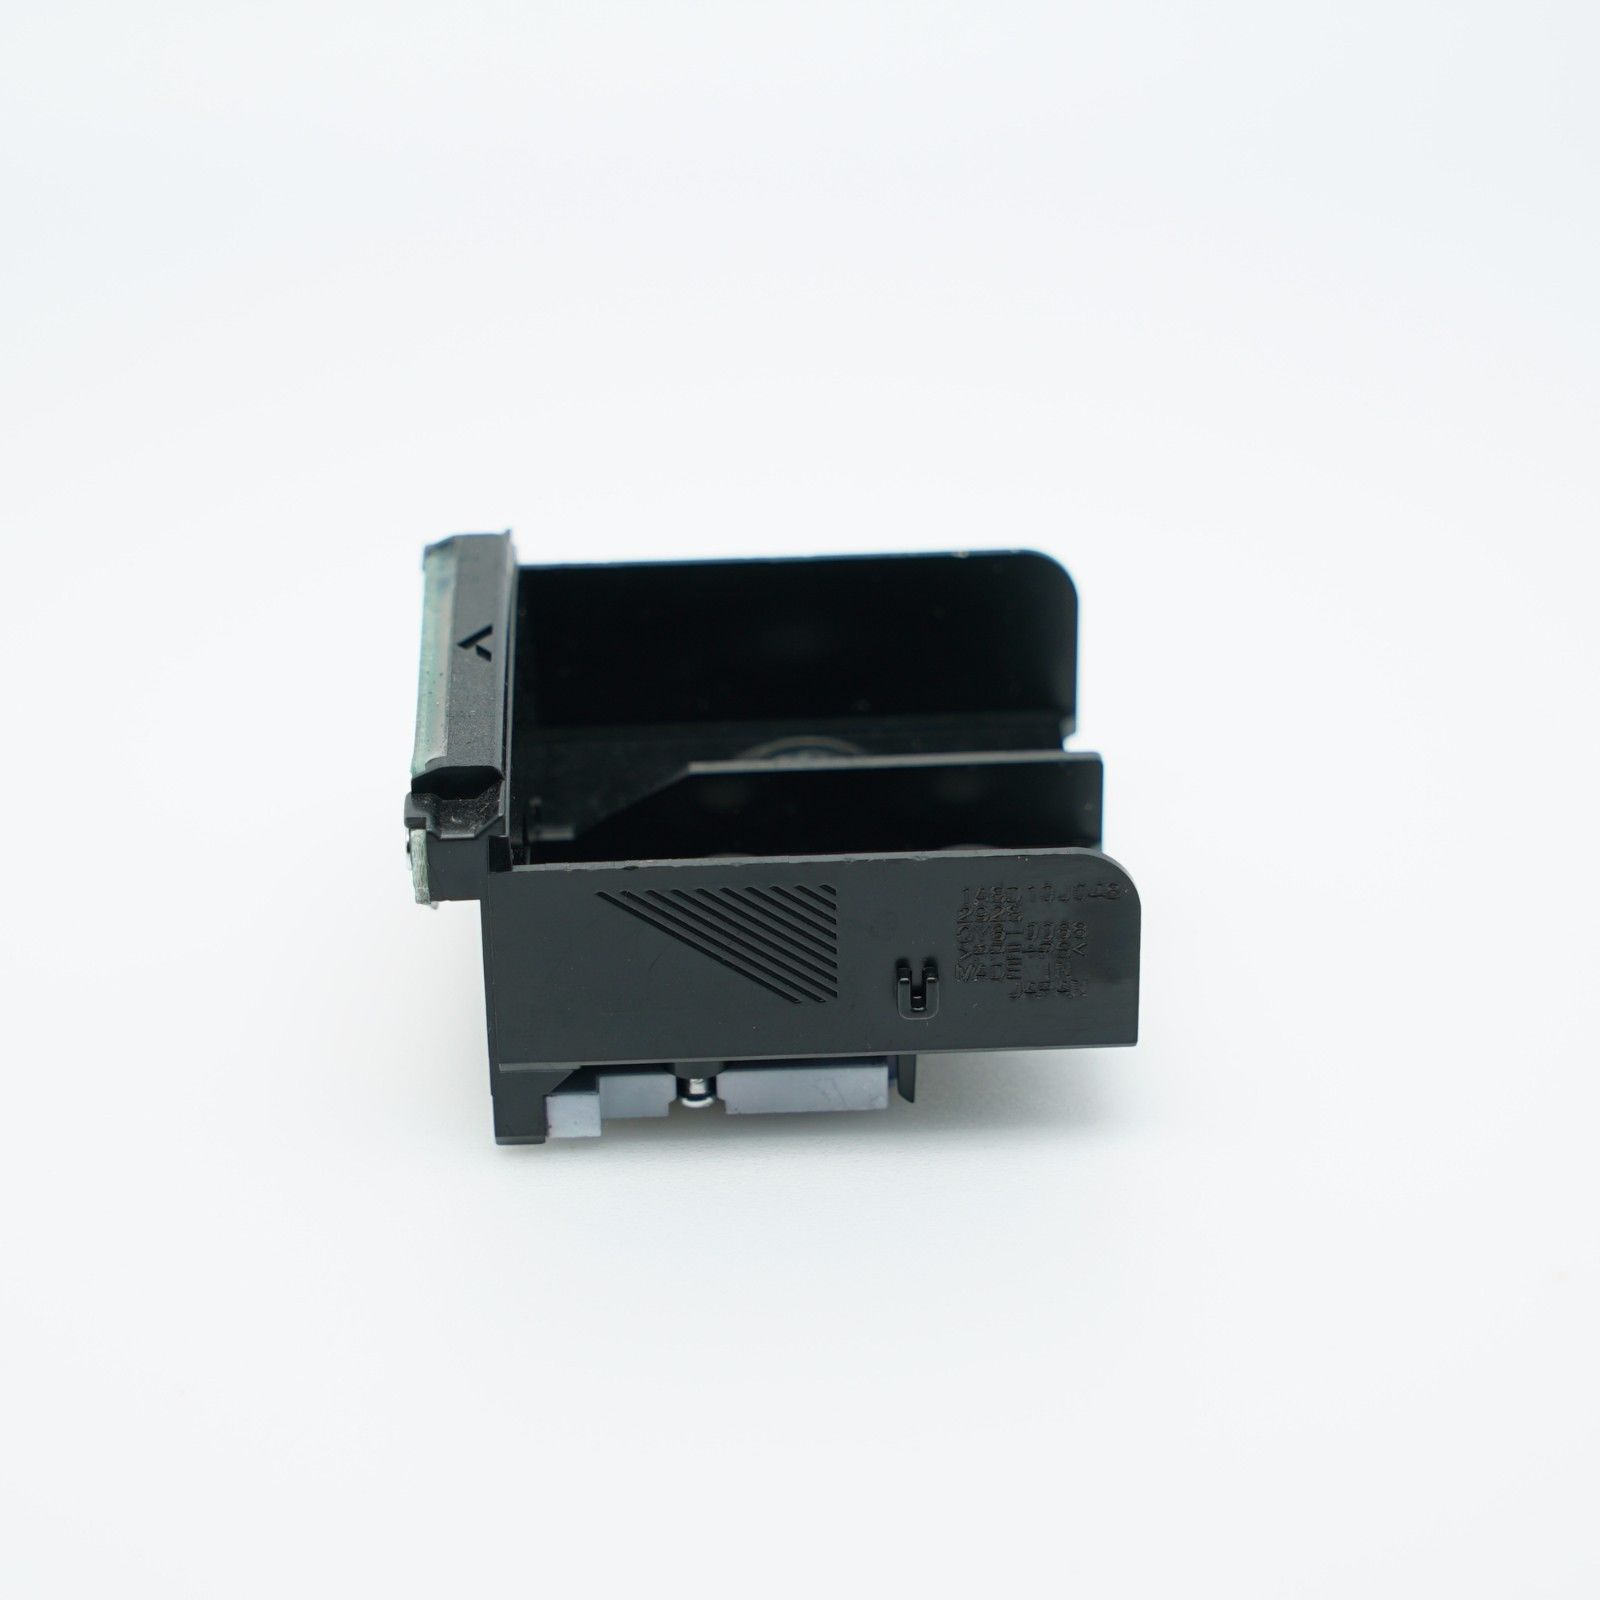 QY6-0068 QY6-0068-000 Printhead Print Head FOR CANON PIXMA iP100 iP110<br>